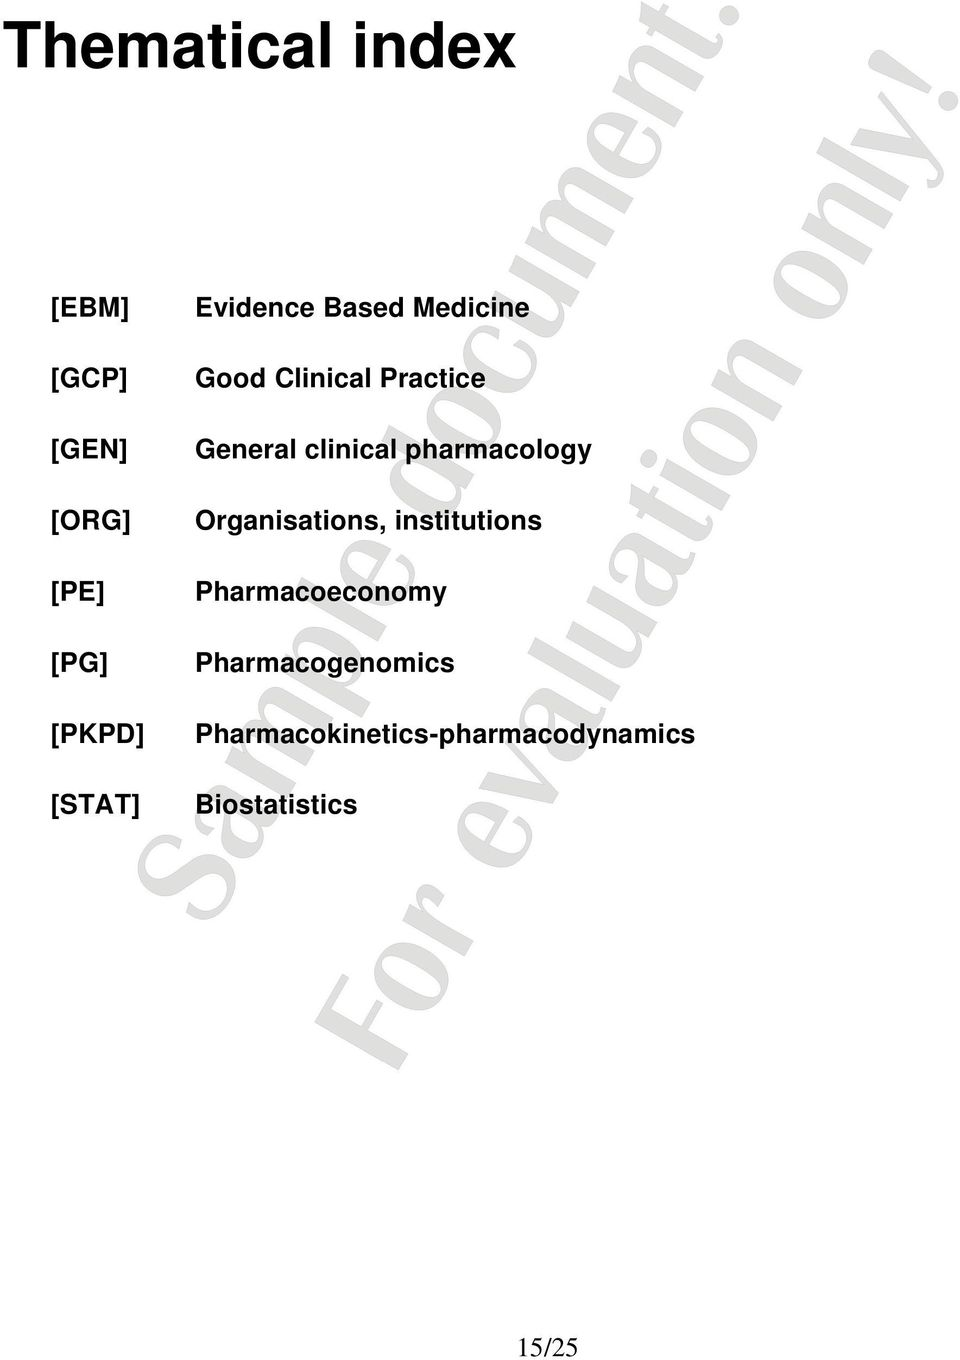 clinical pharmacology Organisations, institutions